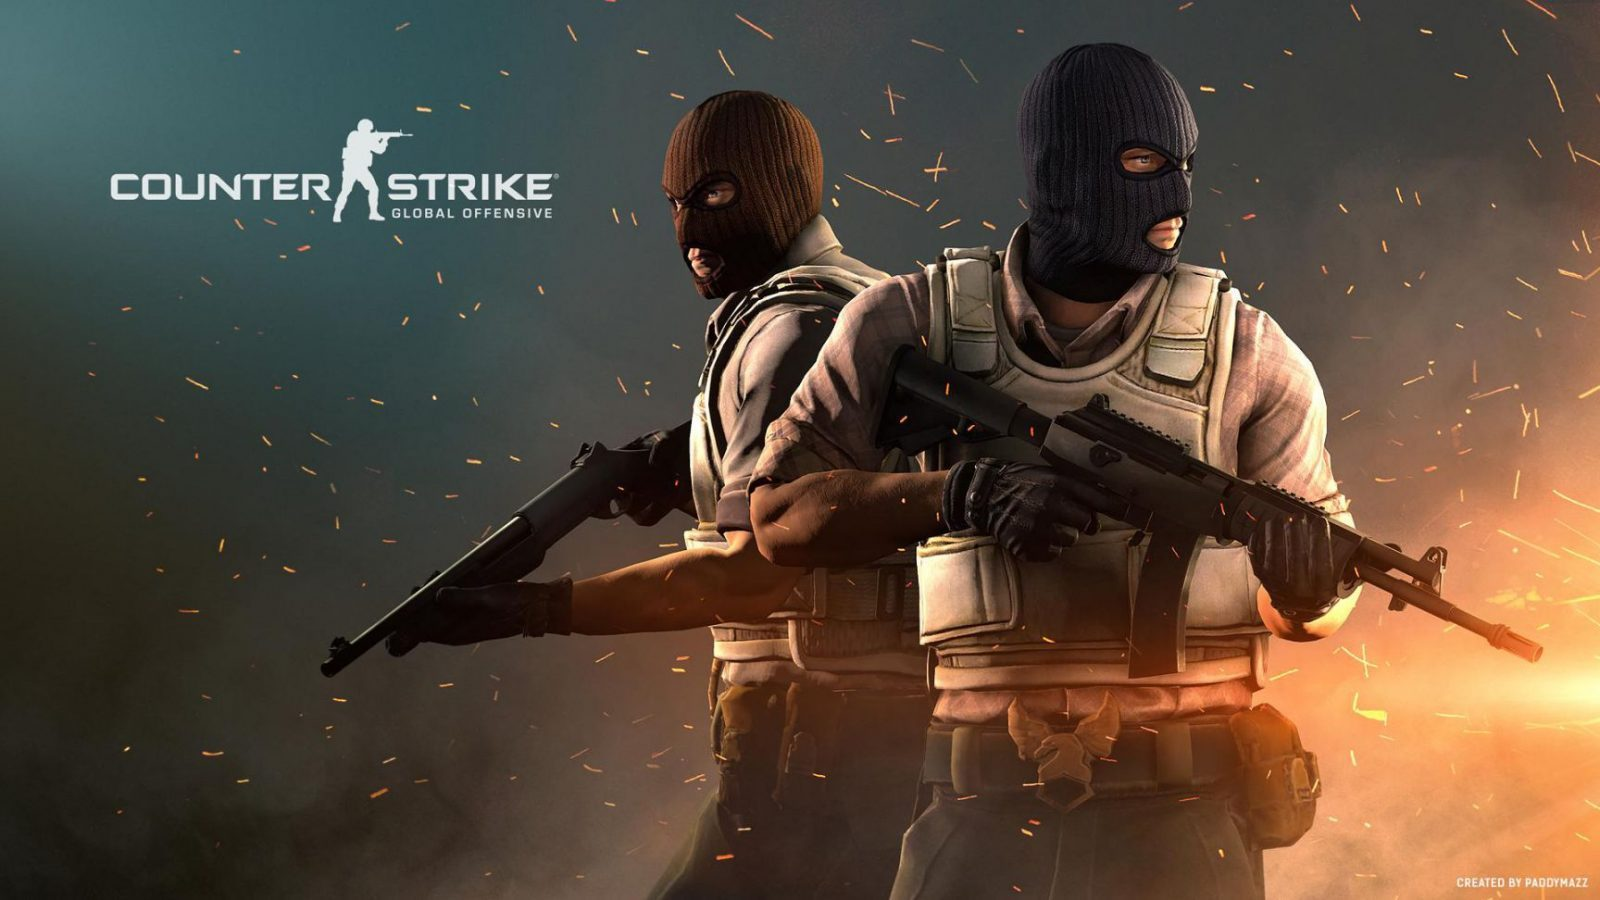 How to Play CSGO on Mobile – Is stream link and CSGO good?